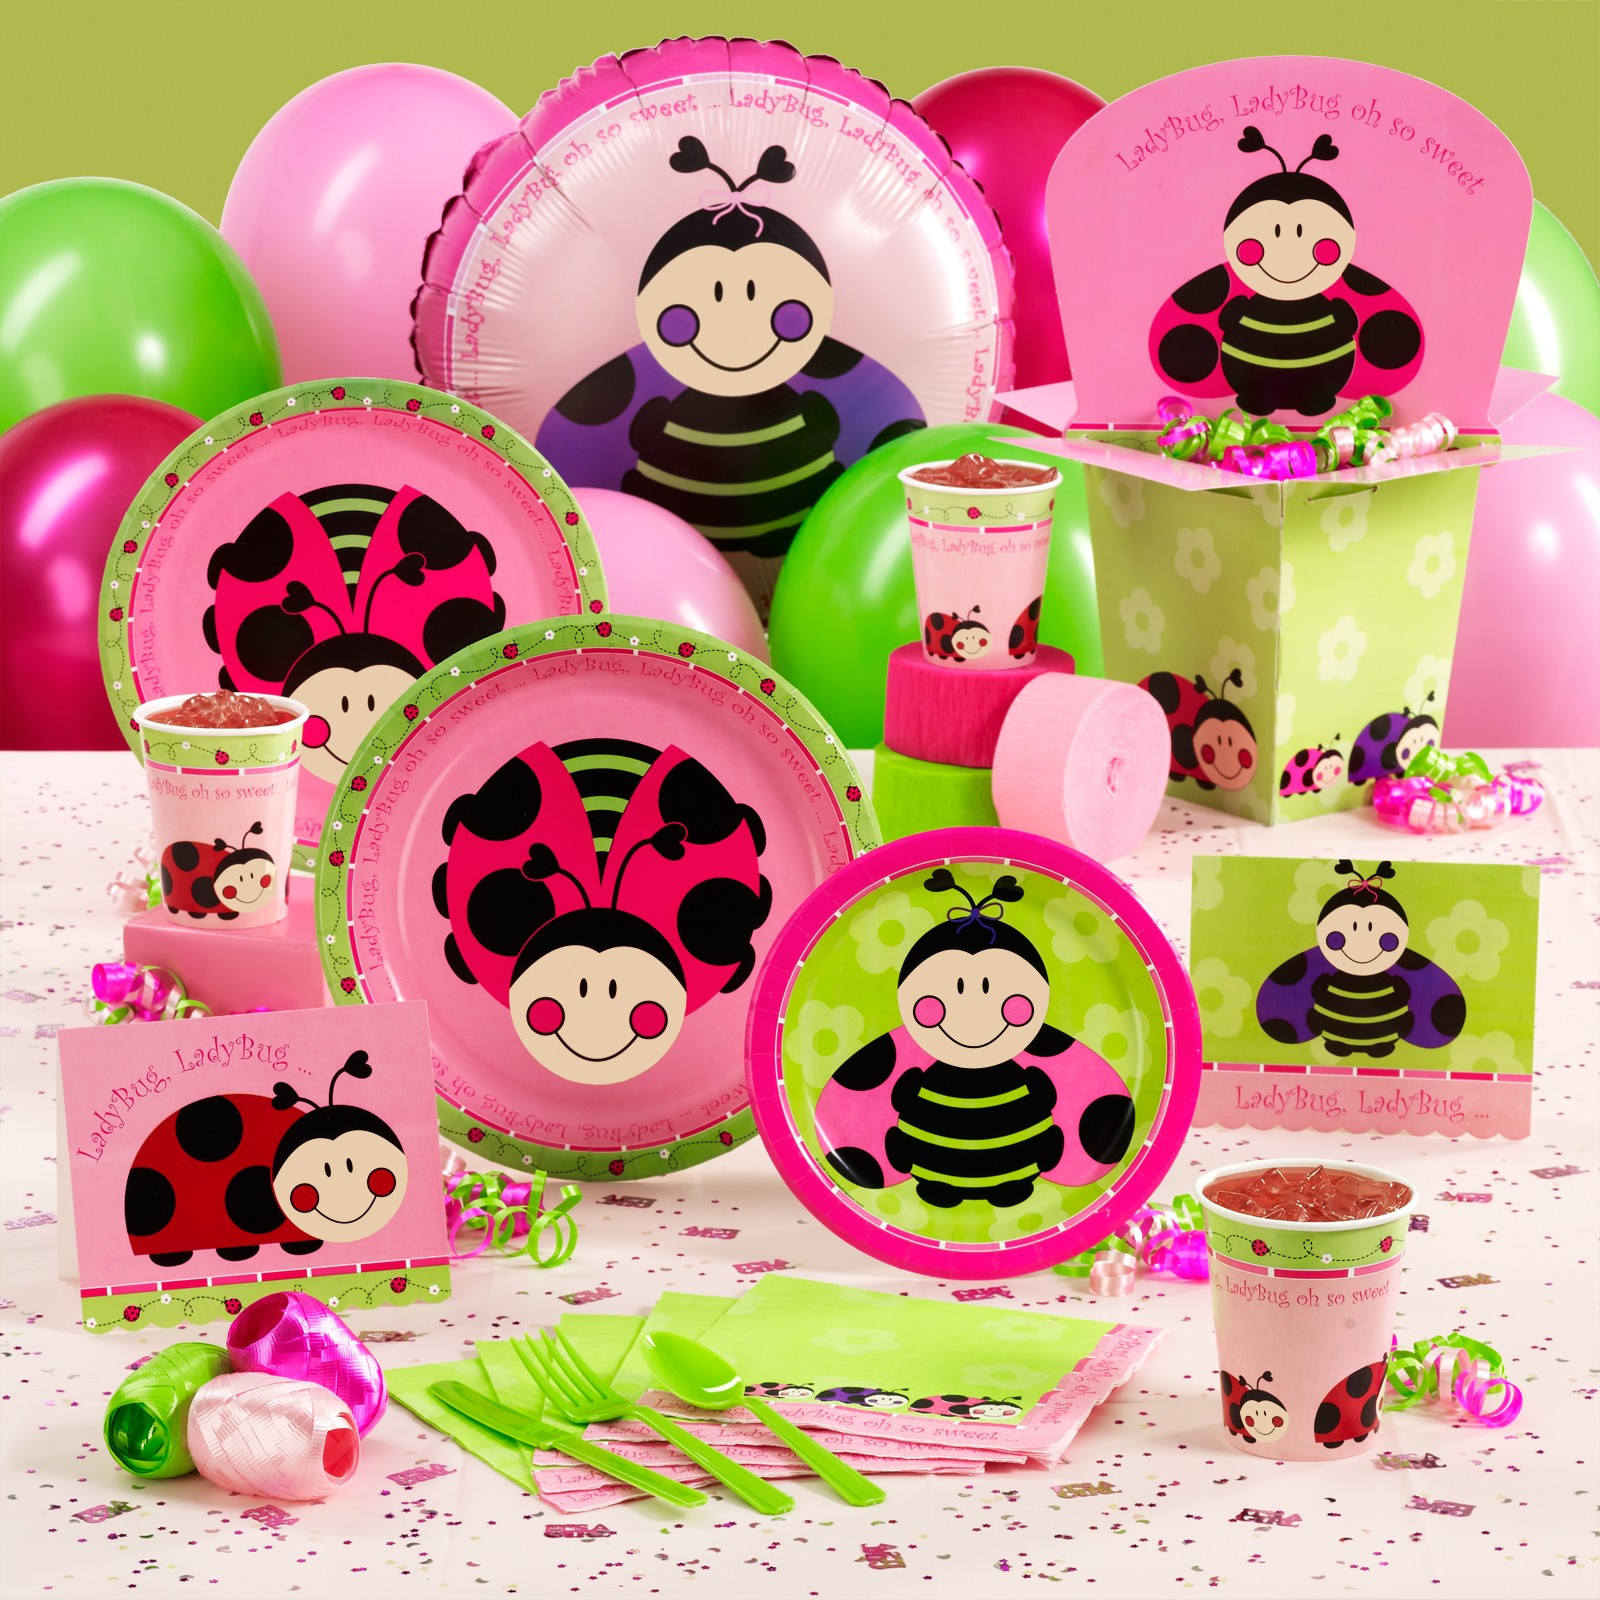 Party City Baby Shower Themes For A Girl  Sandy Party Decorations